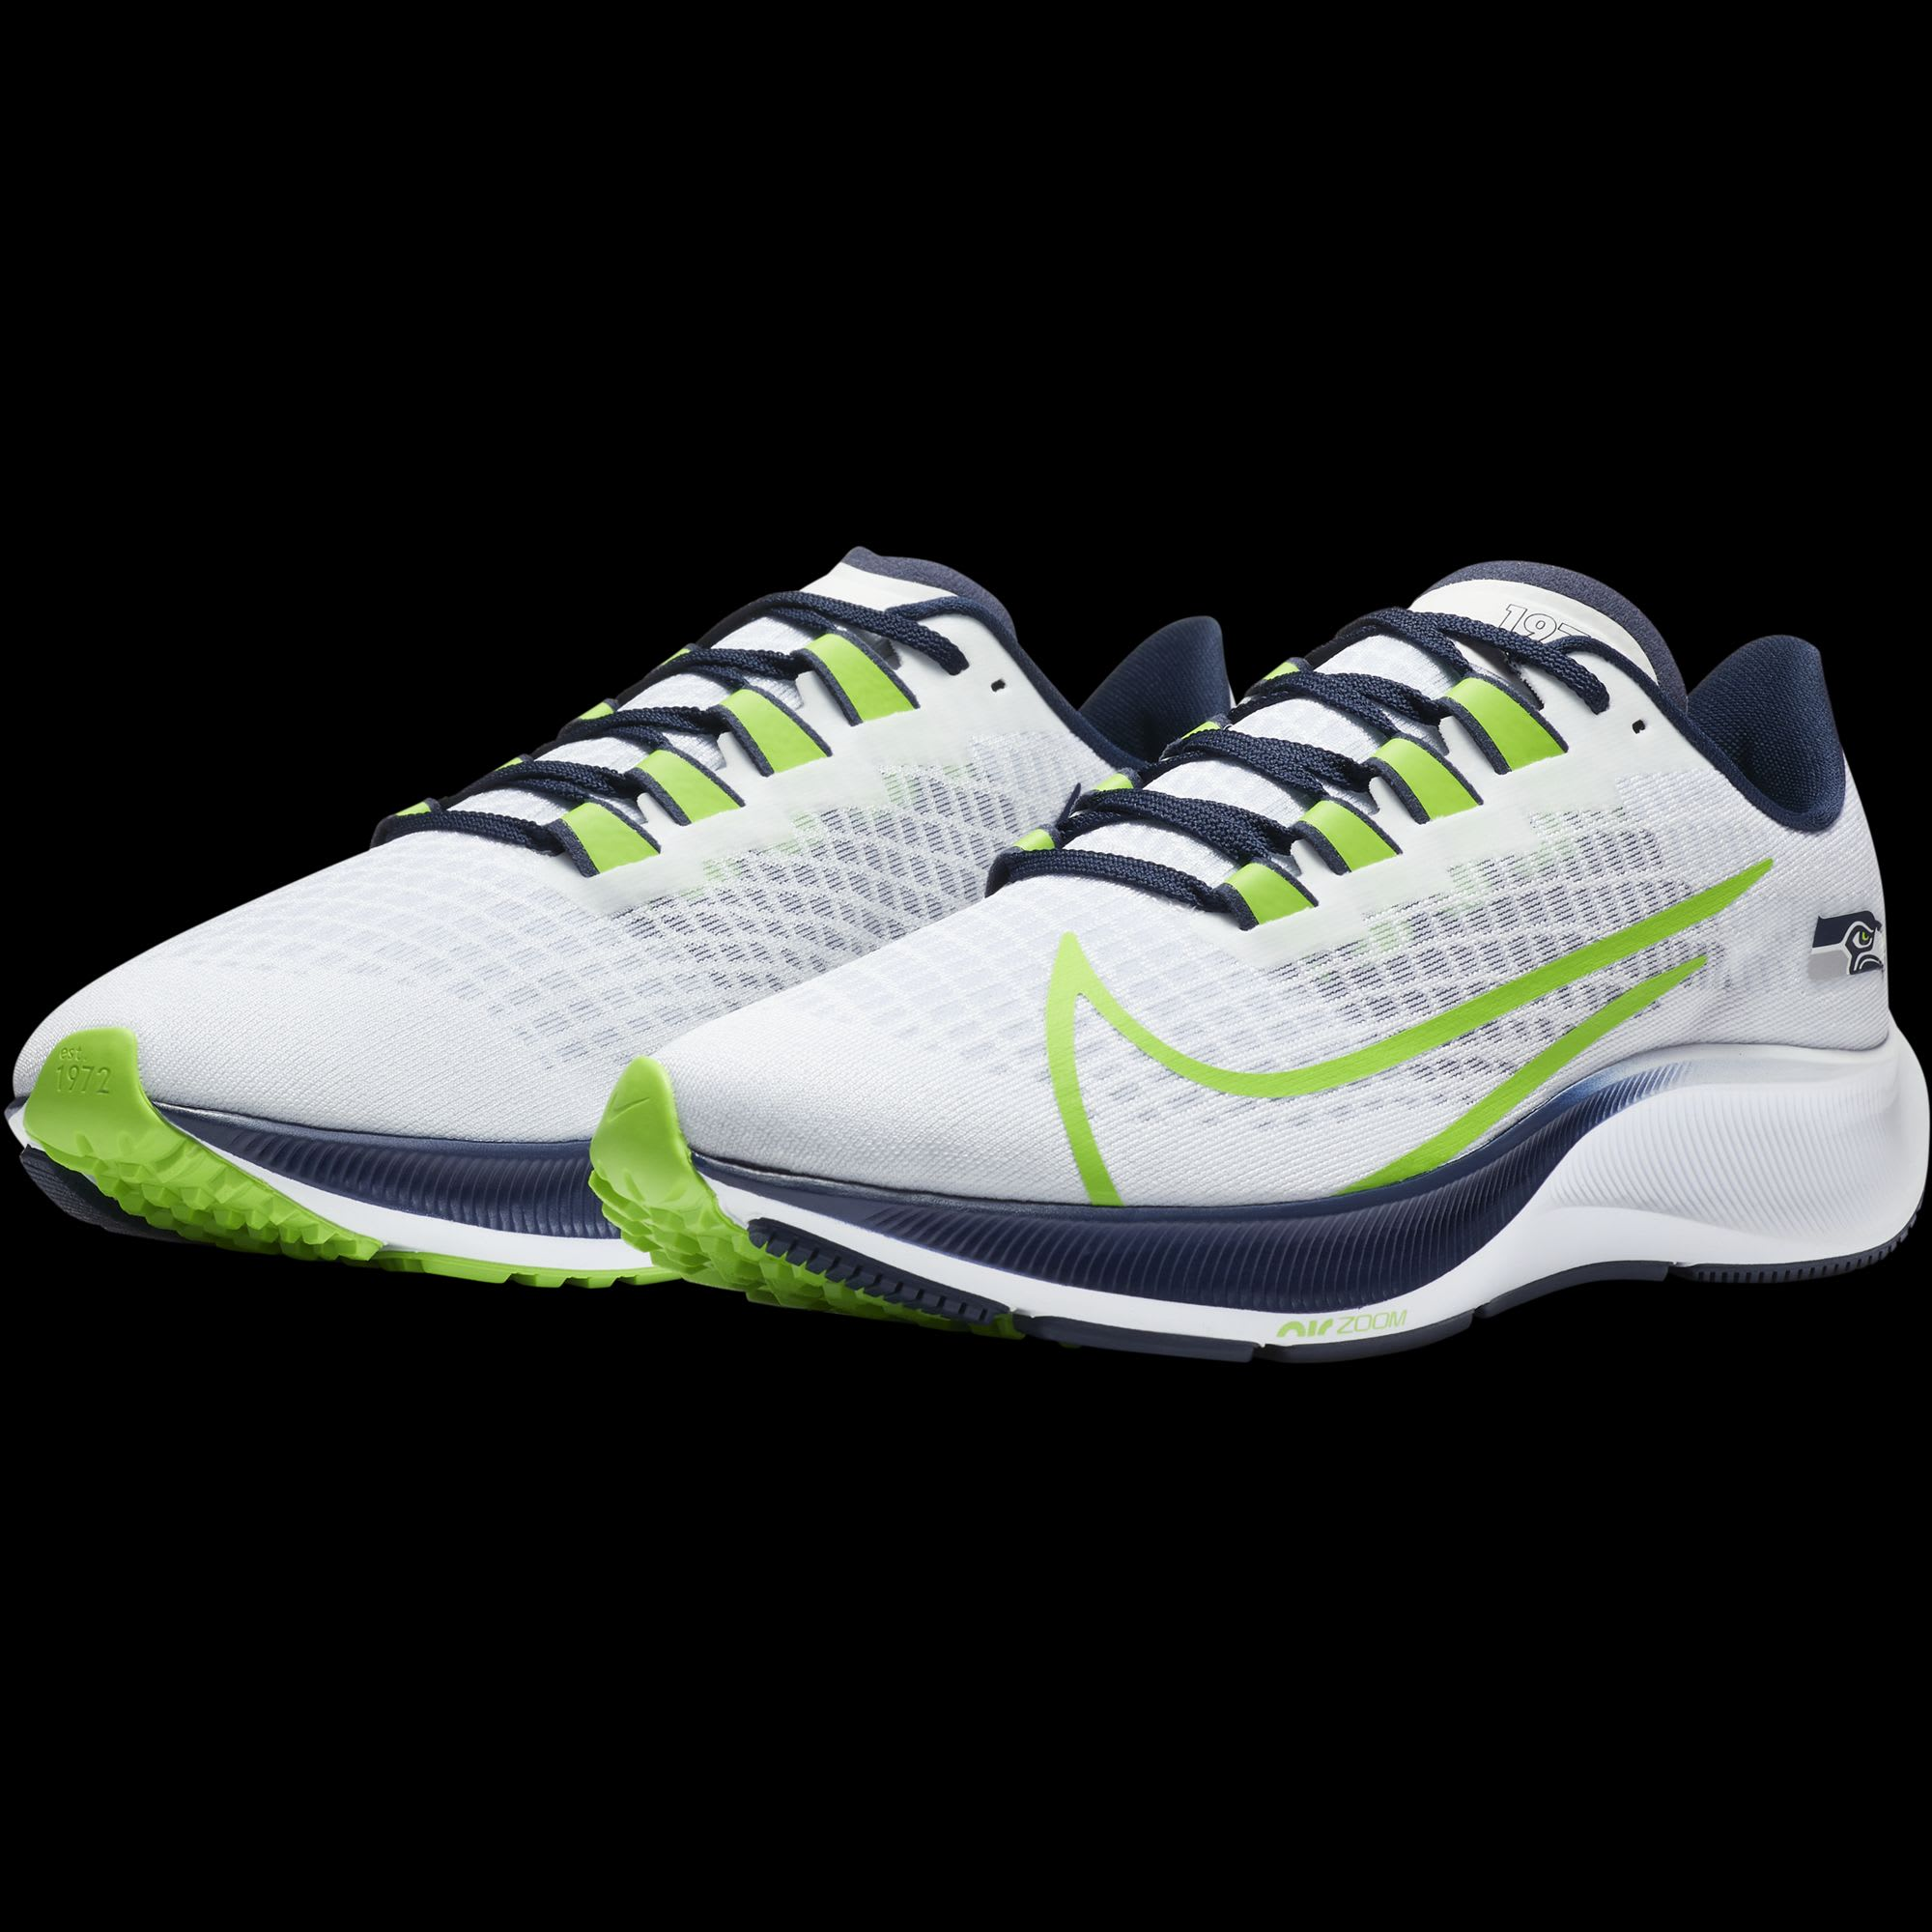 These new Seattle Seahawks Nike running shoes are awesome